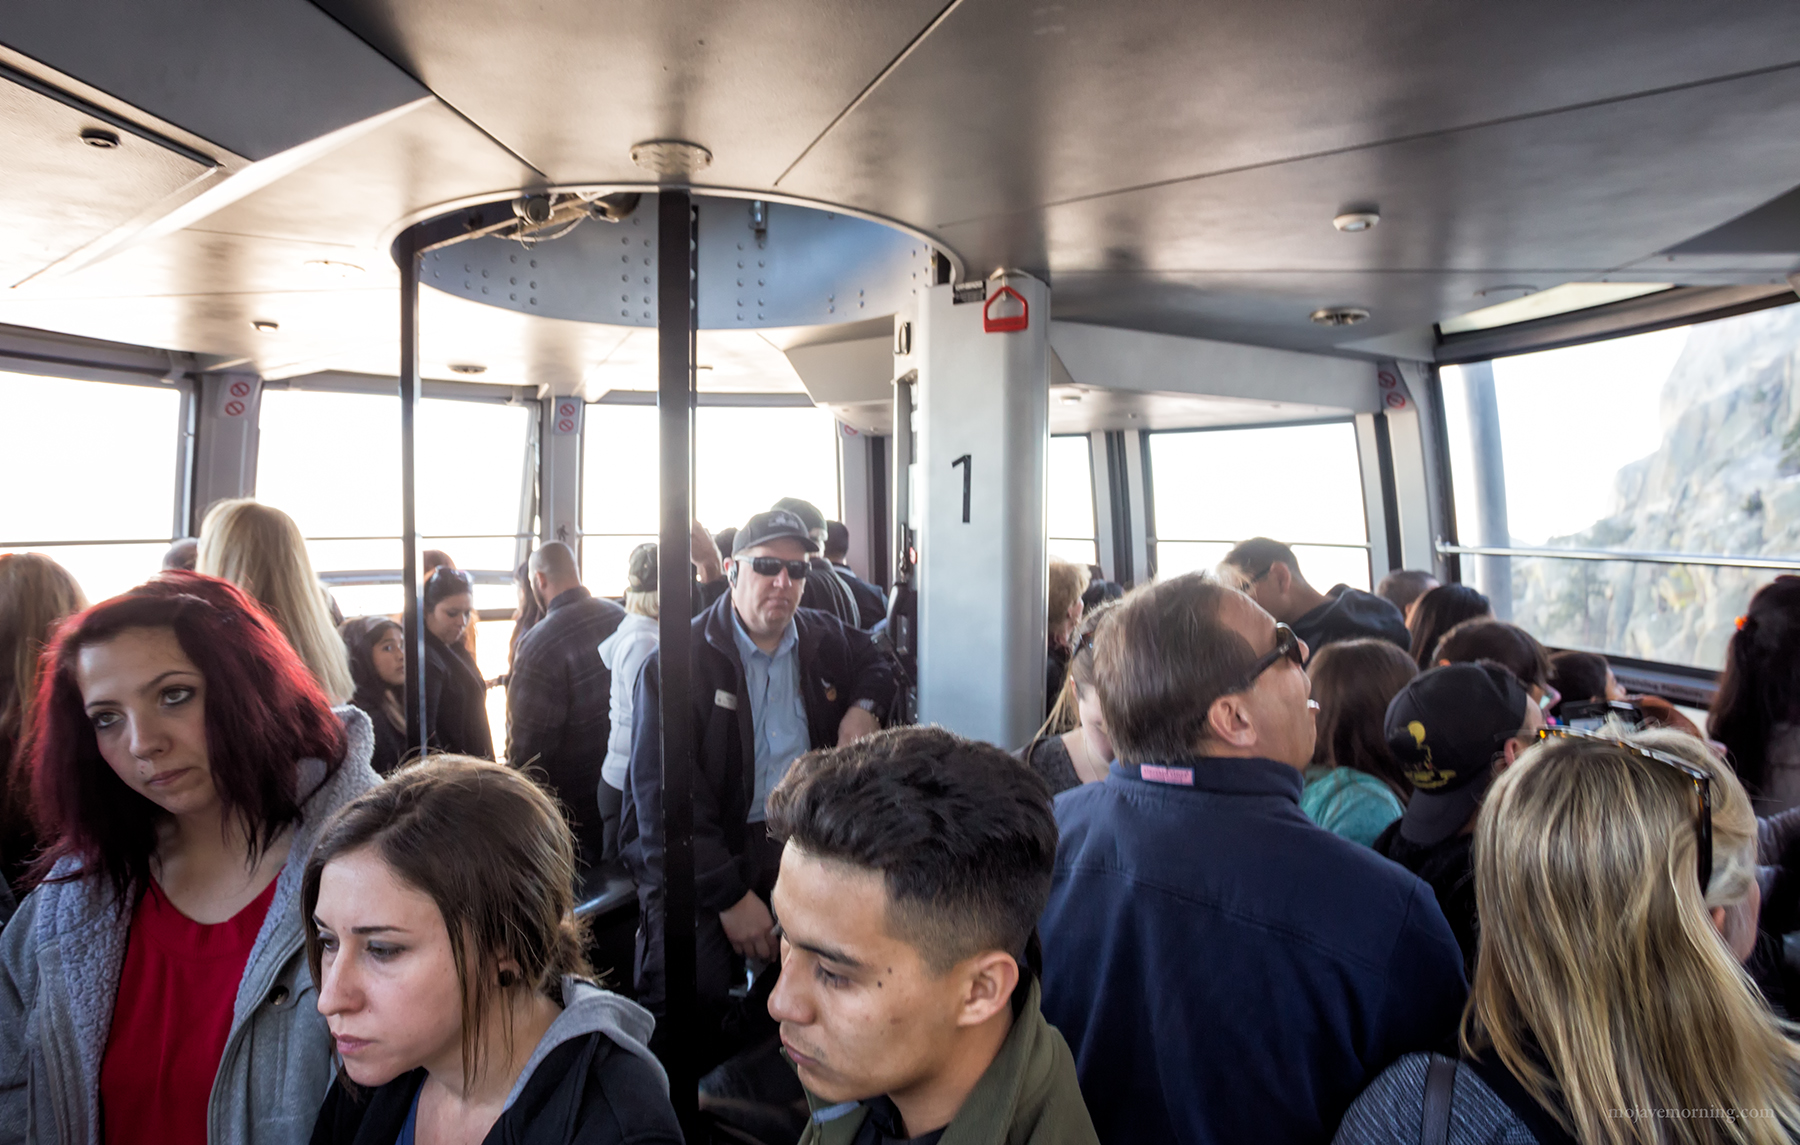 Inside the tram everyone is rapt as the view grows increasingly spectacular... and the drop increasingly far. Everyone, that is, except the operator. The cars hold up to 80 people and are also the only means of getting water and supplies up to the park at the top.